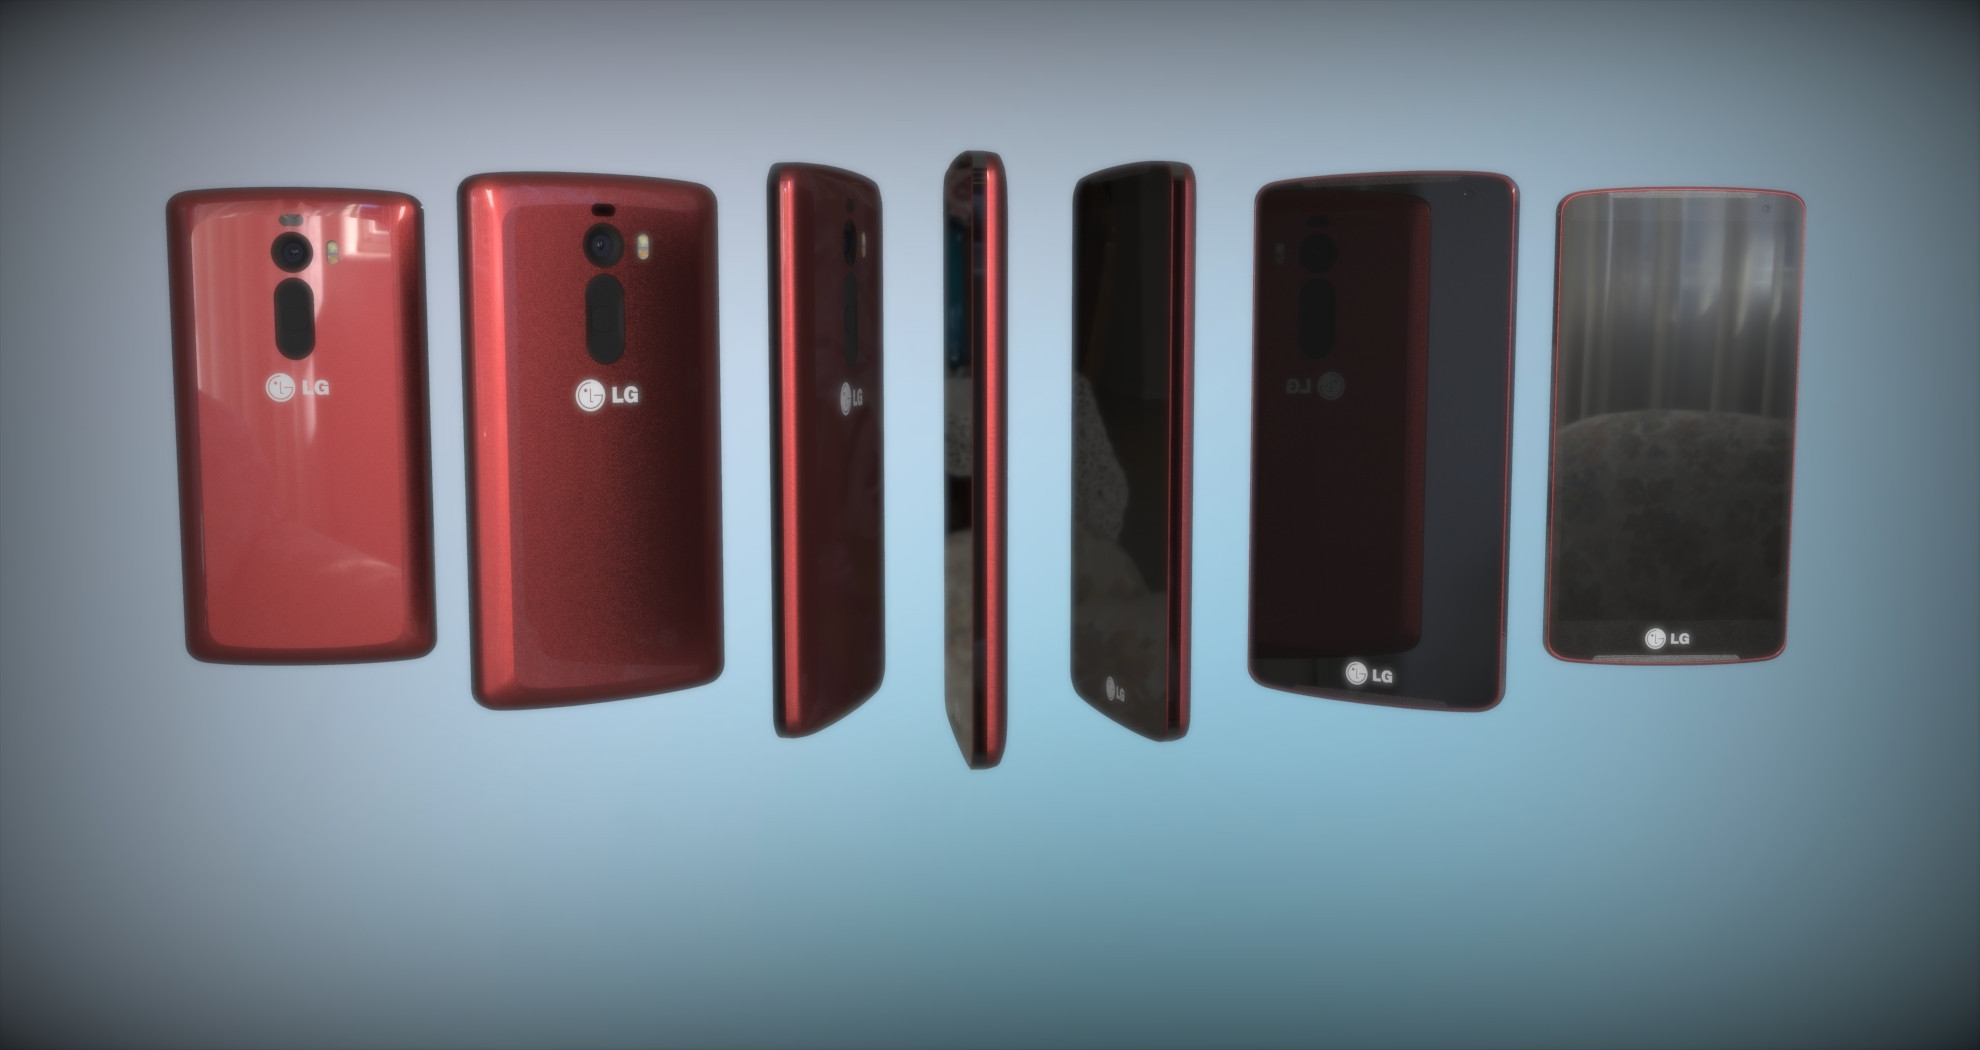 1427275653_lg-g4-concept-with-front-facing-speakers.jpg